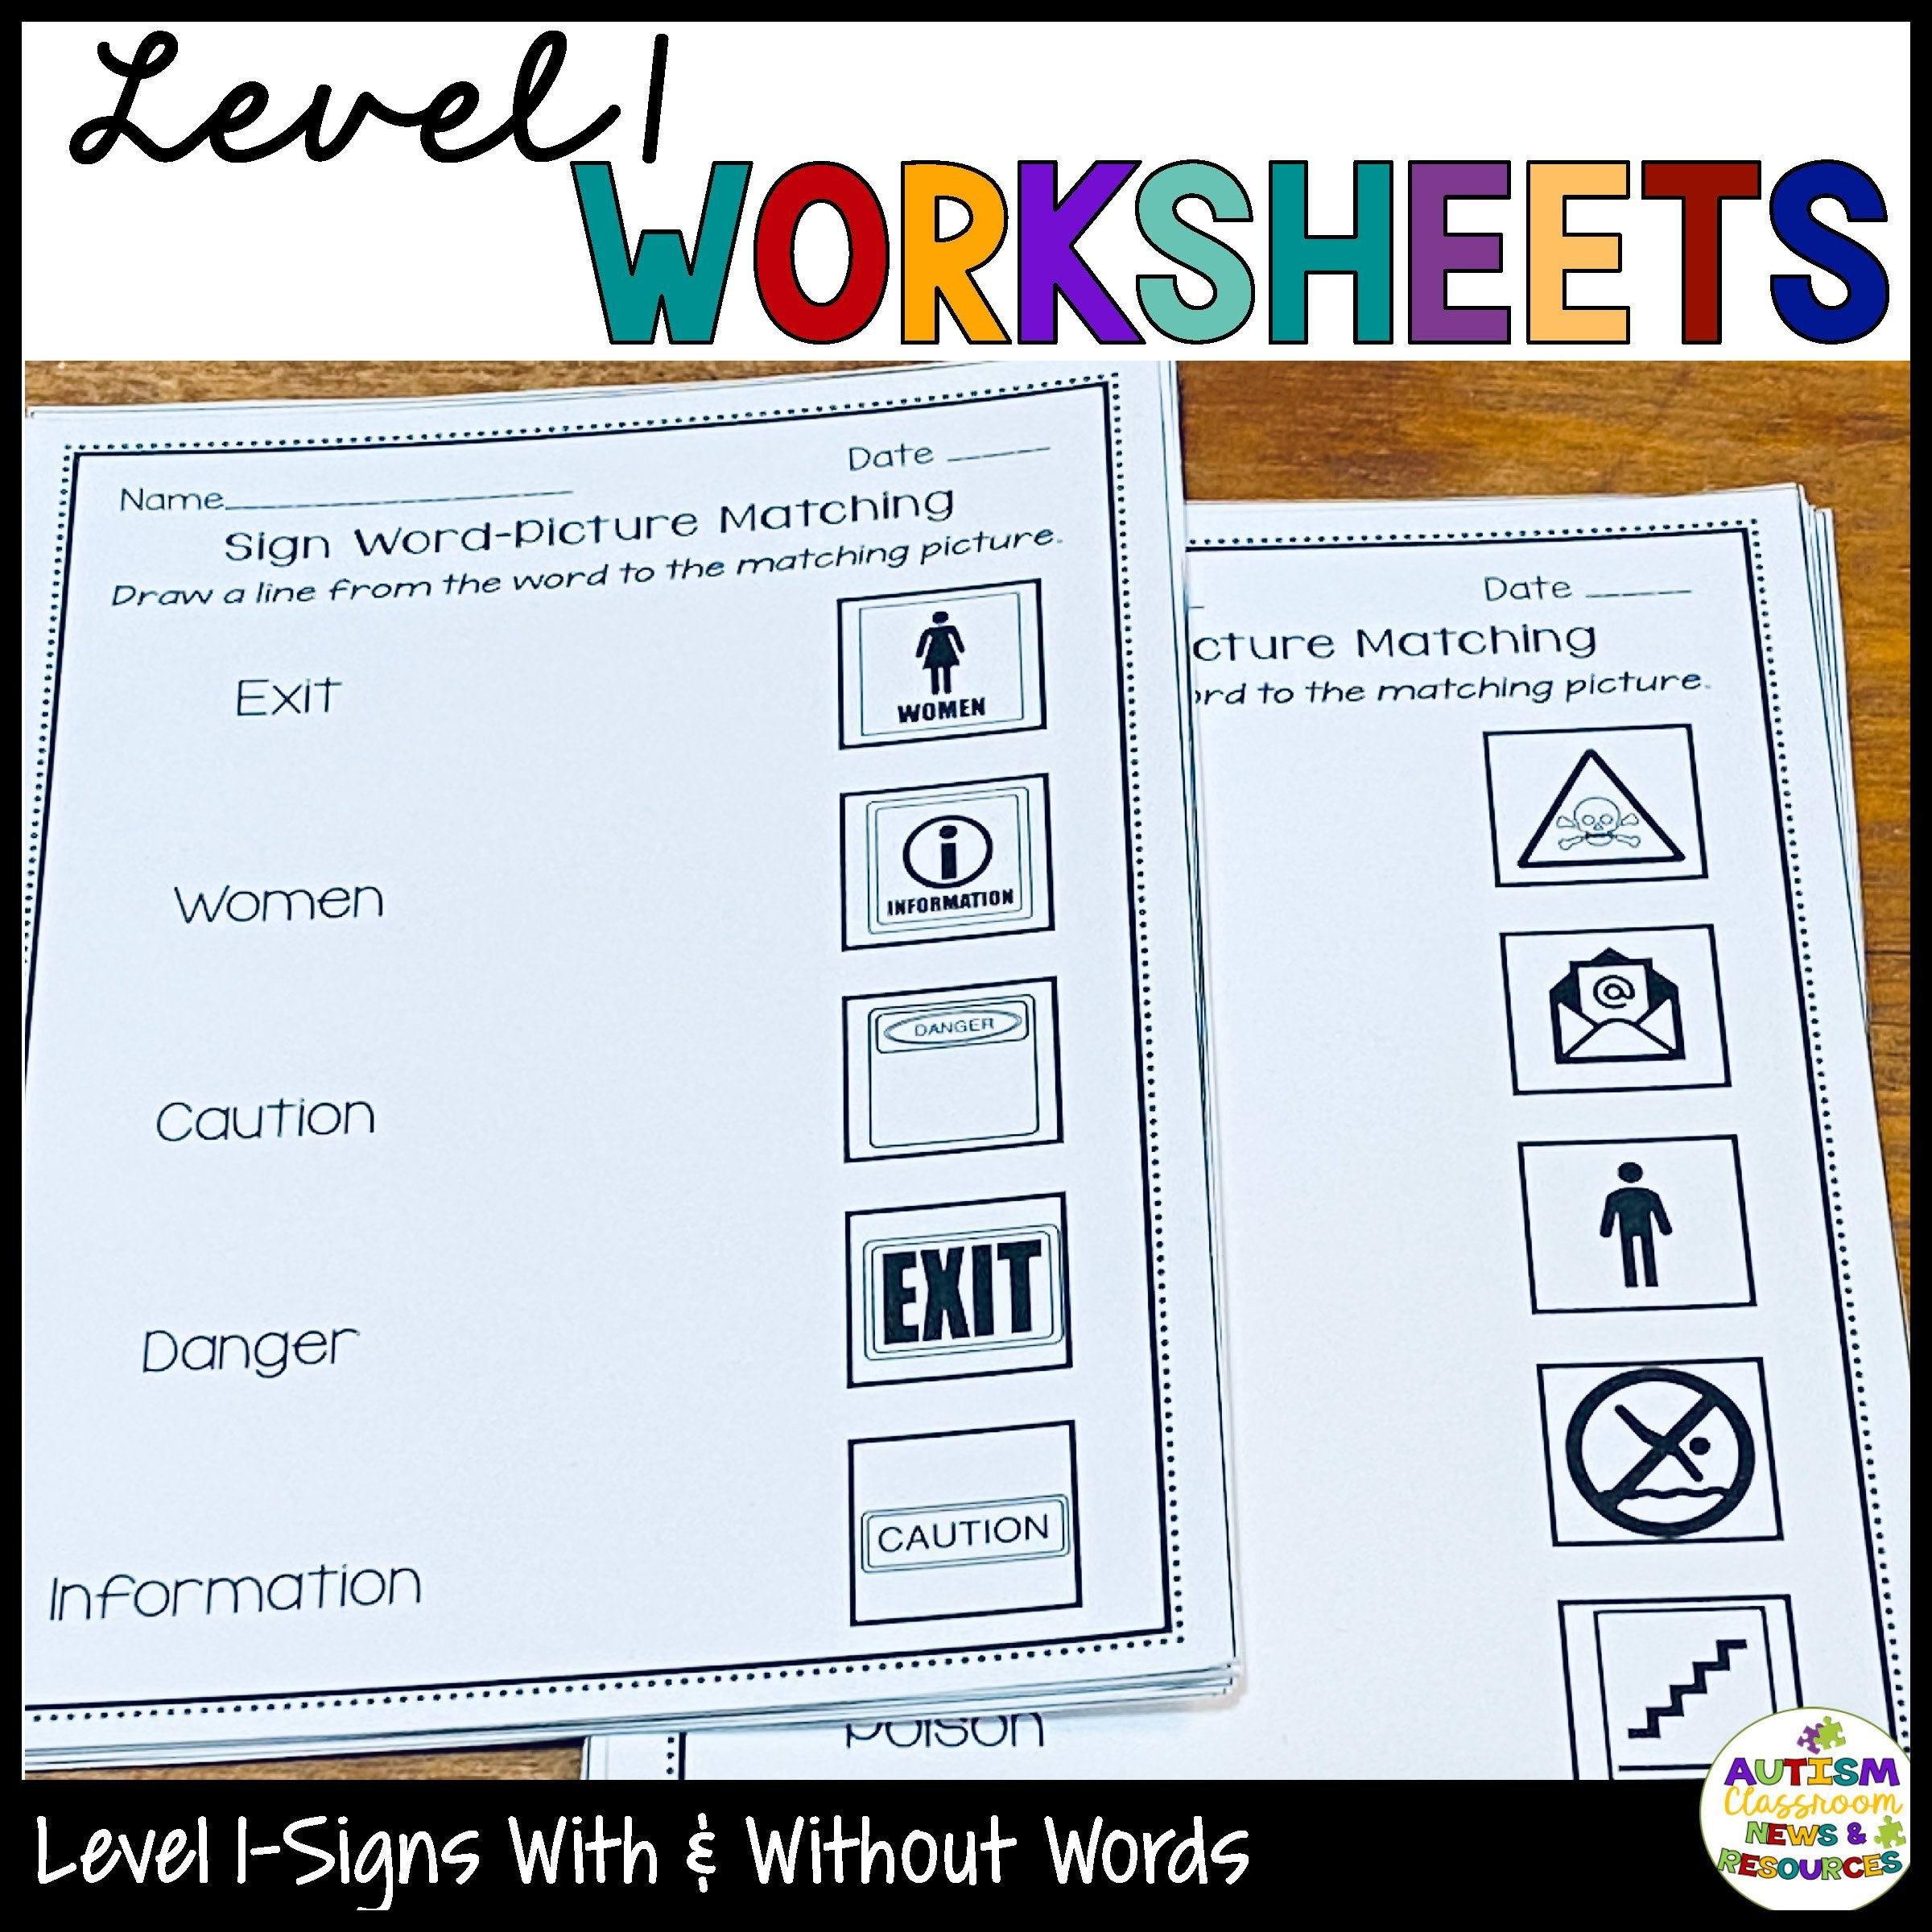 20 Community Signs Worksheets